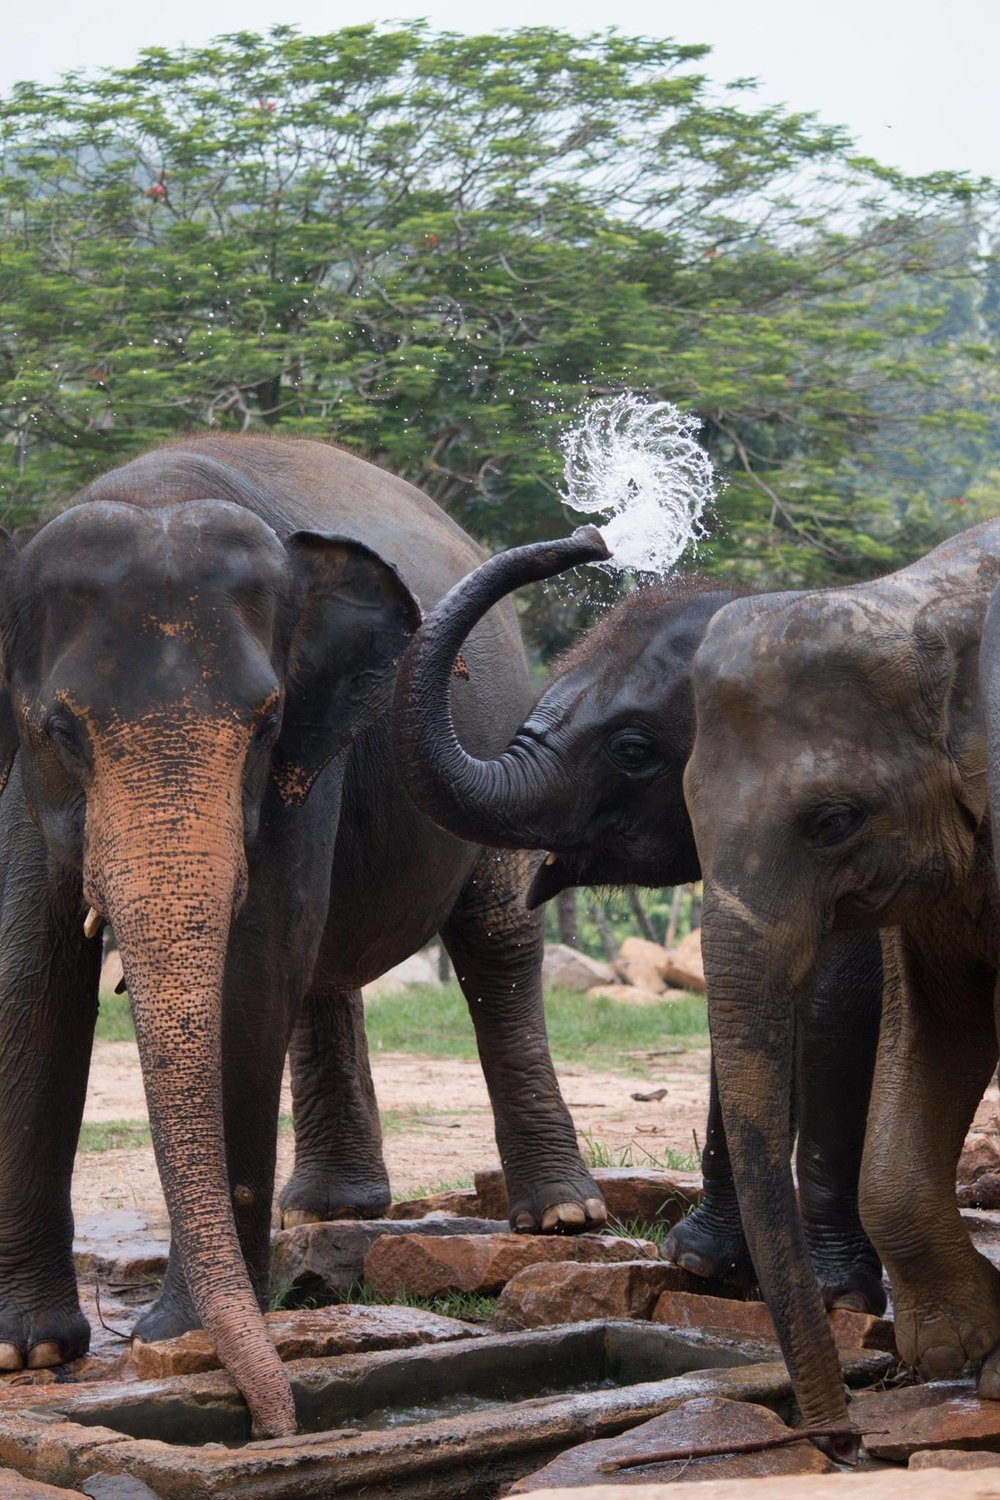 invite-to-paradise-sri-lanka-and-maldives-specialists-travel-agent-tour-operator-customer-review--feedback-joel-rhian-elephants-10.jpg